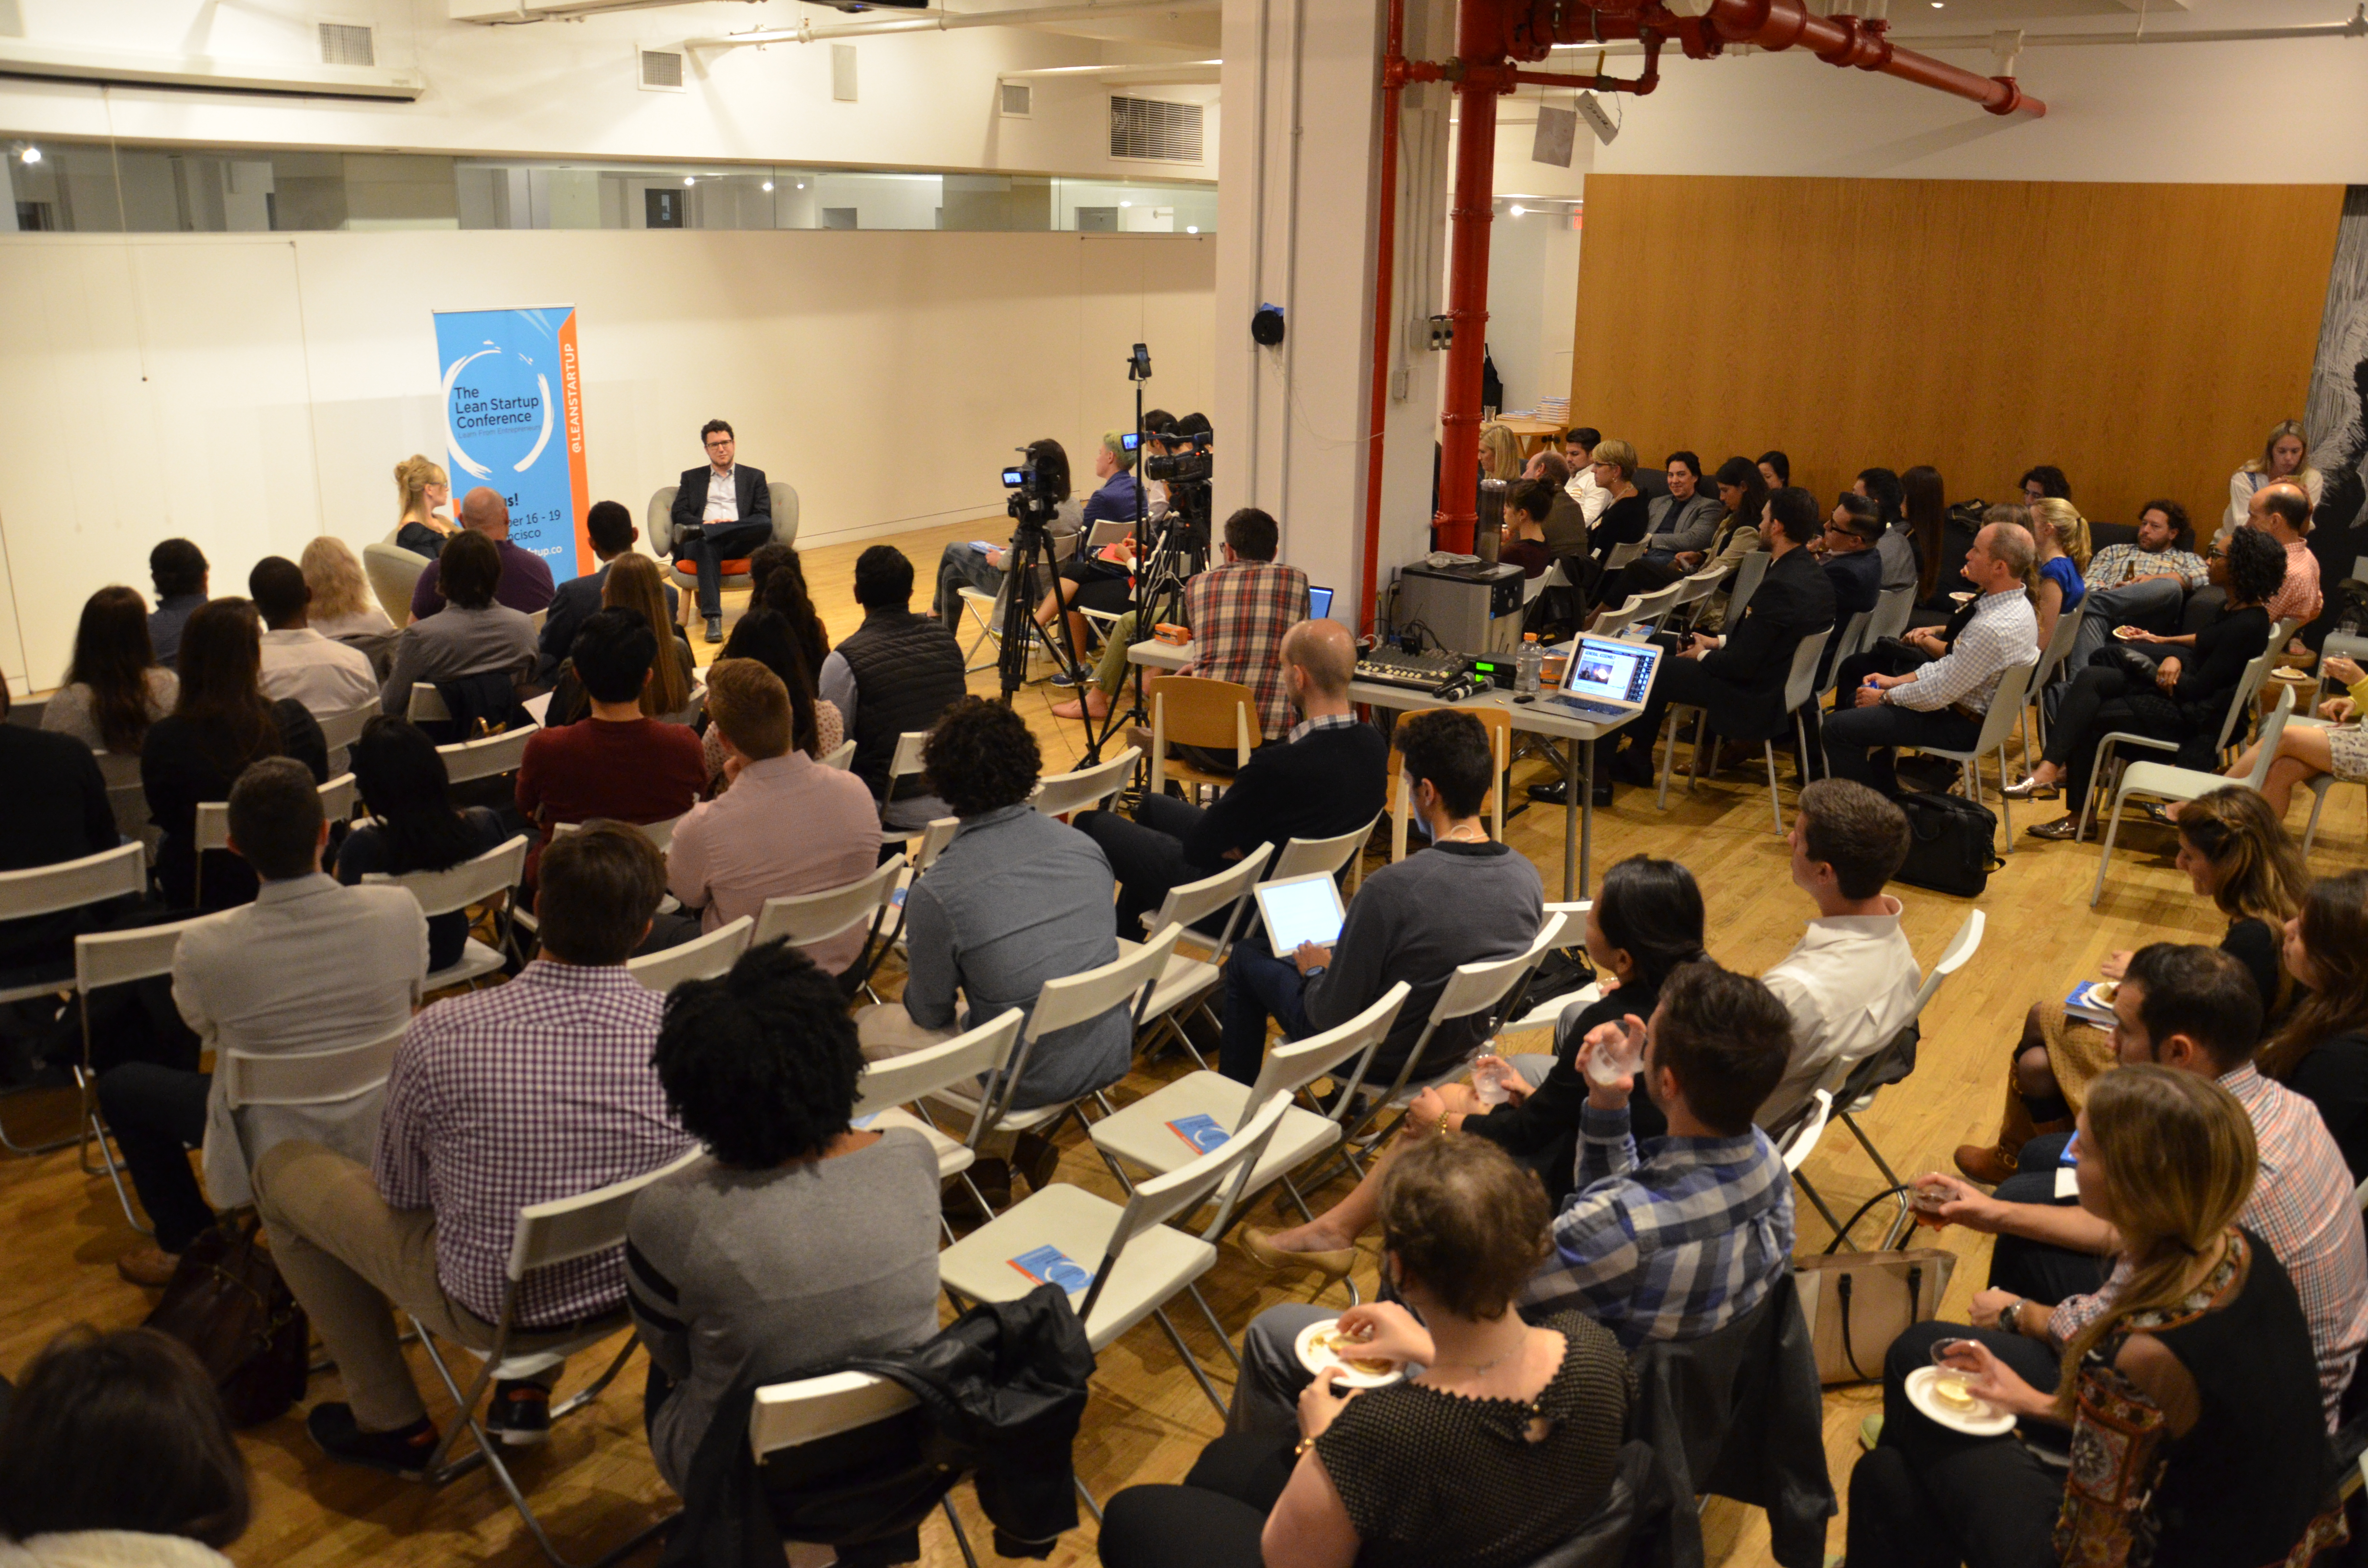 Image of Crowd at Eric Ries Event at General Assembly